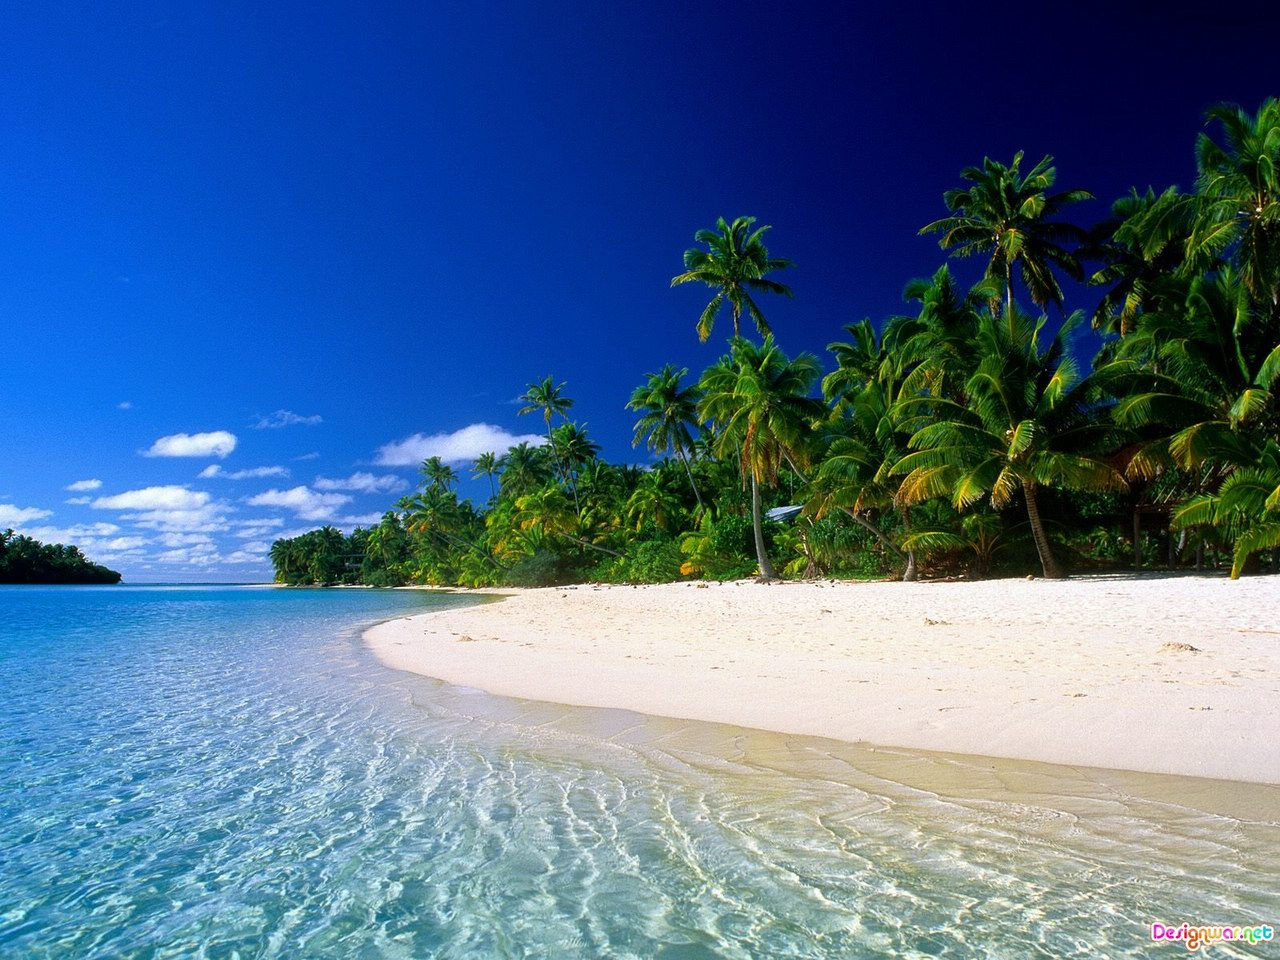 45 Incredible Collection Of Beach Wallpapers - FunPulp